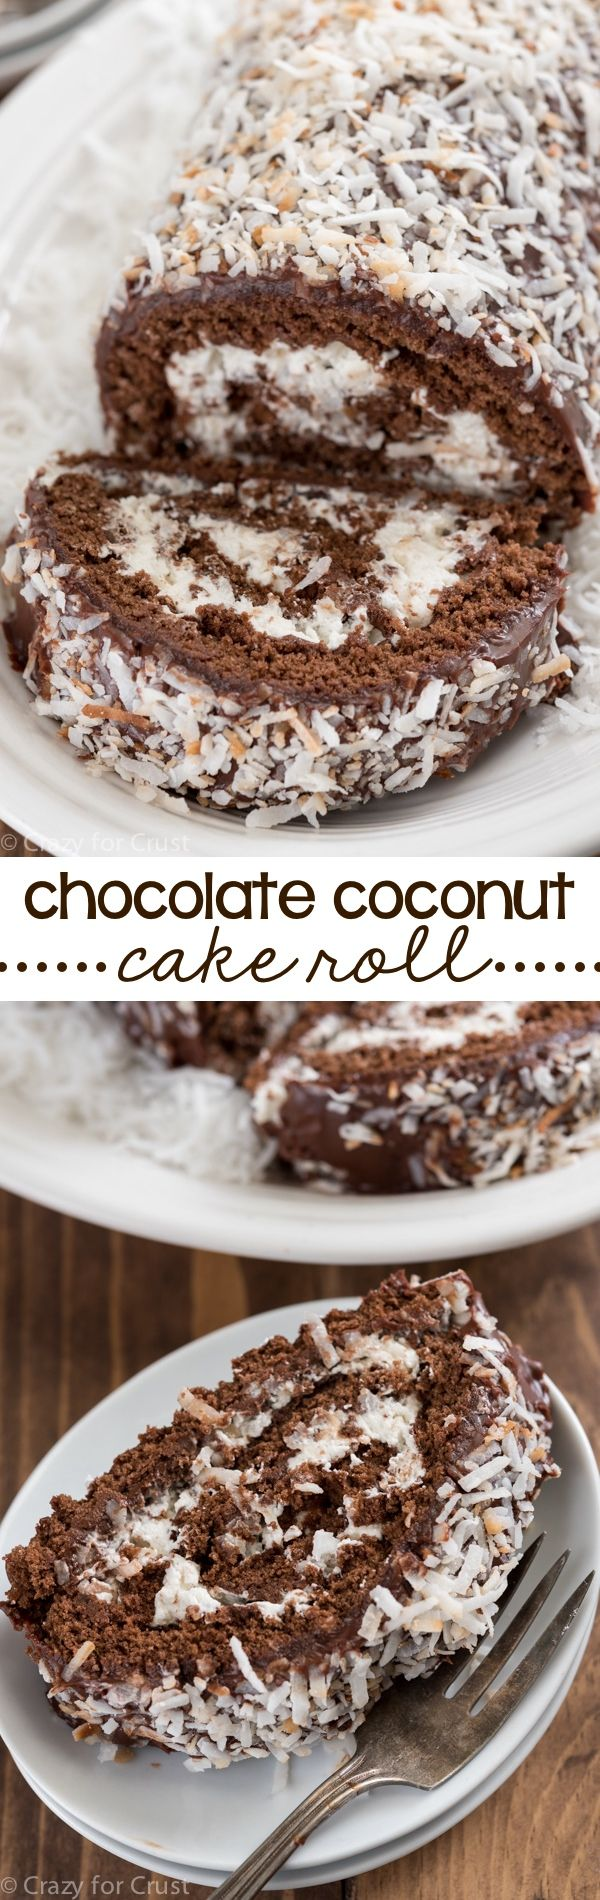 A Chocolate Coconut Cake Roll is easier to make than you think! Chocolate cake is filled with Nutella and coconut whipped cream and then topped with chocolate ganache and more coconut